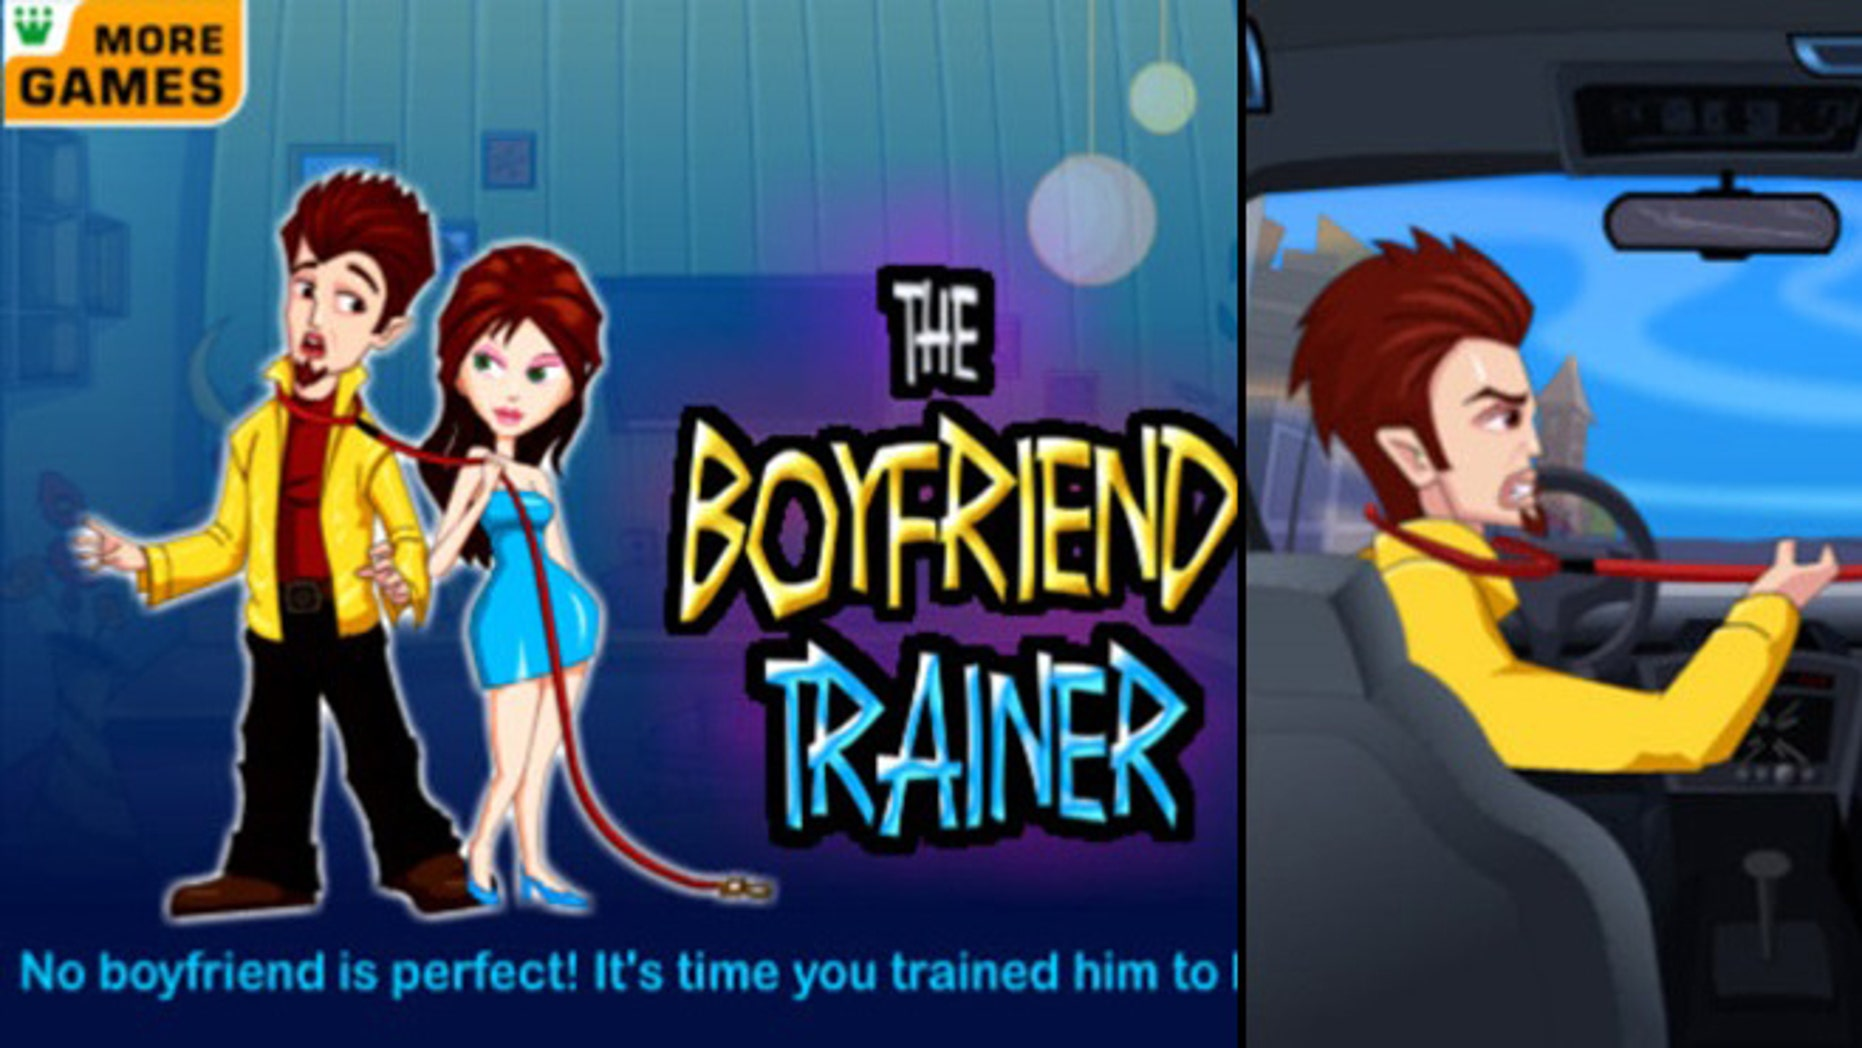 """The """"Boyfriend Trainer"""" app suggests that """"when scolding doesn't work, just zap him, whack him and train him to be your ideal man!"""""""